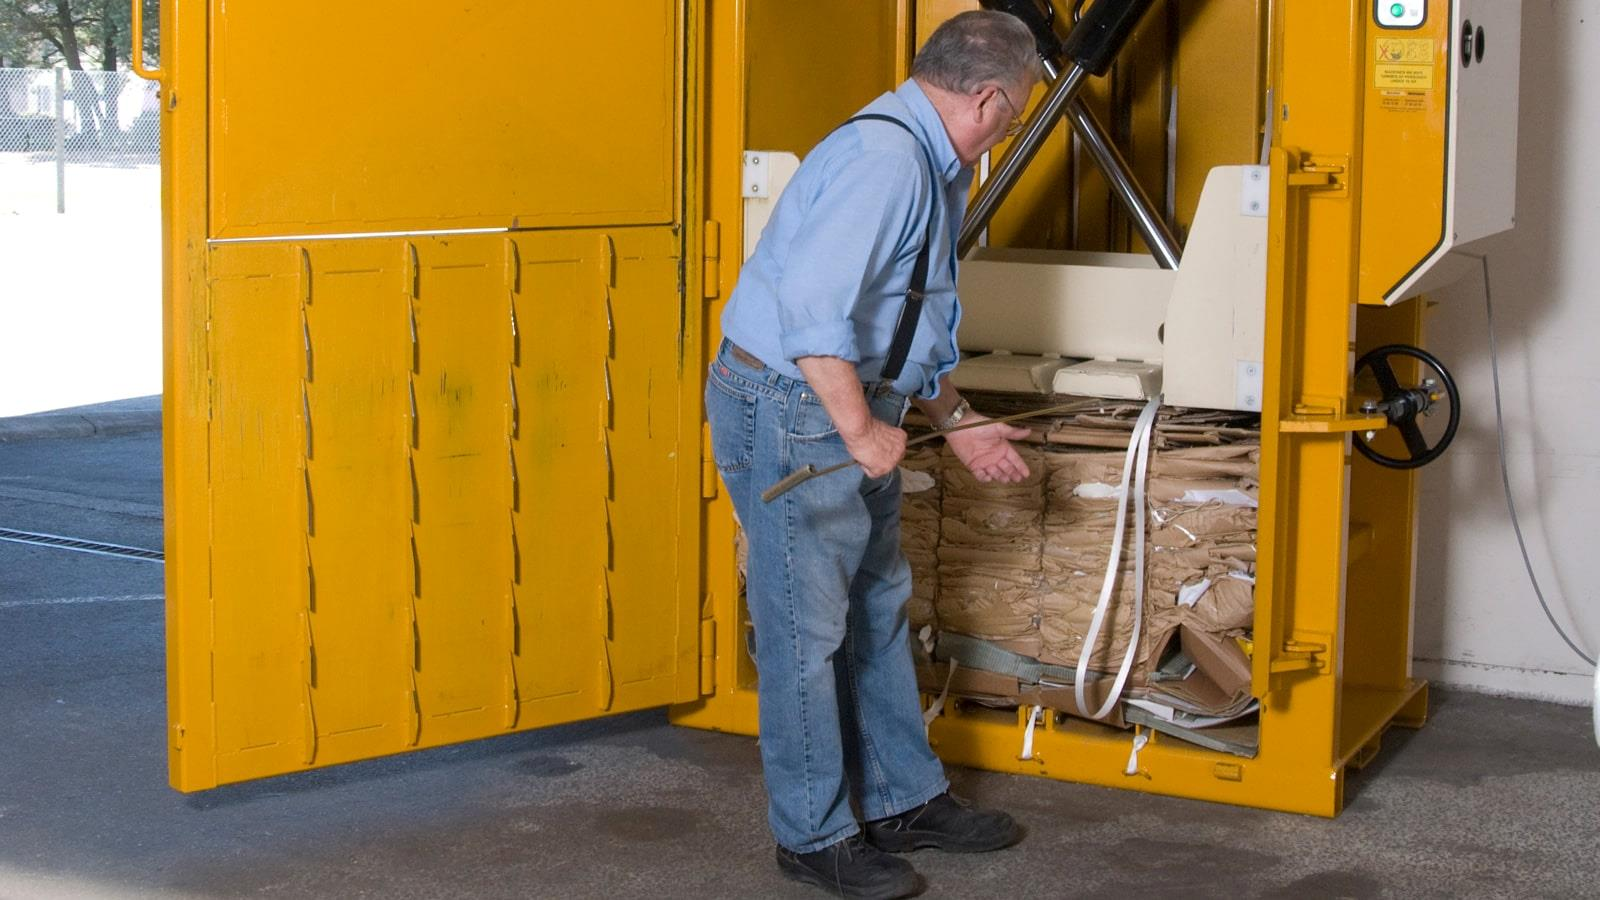 RewAir employee prepares cardboard bale for tying and uses cord hook